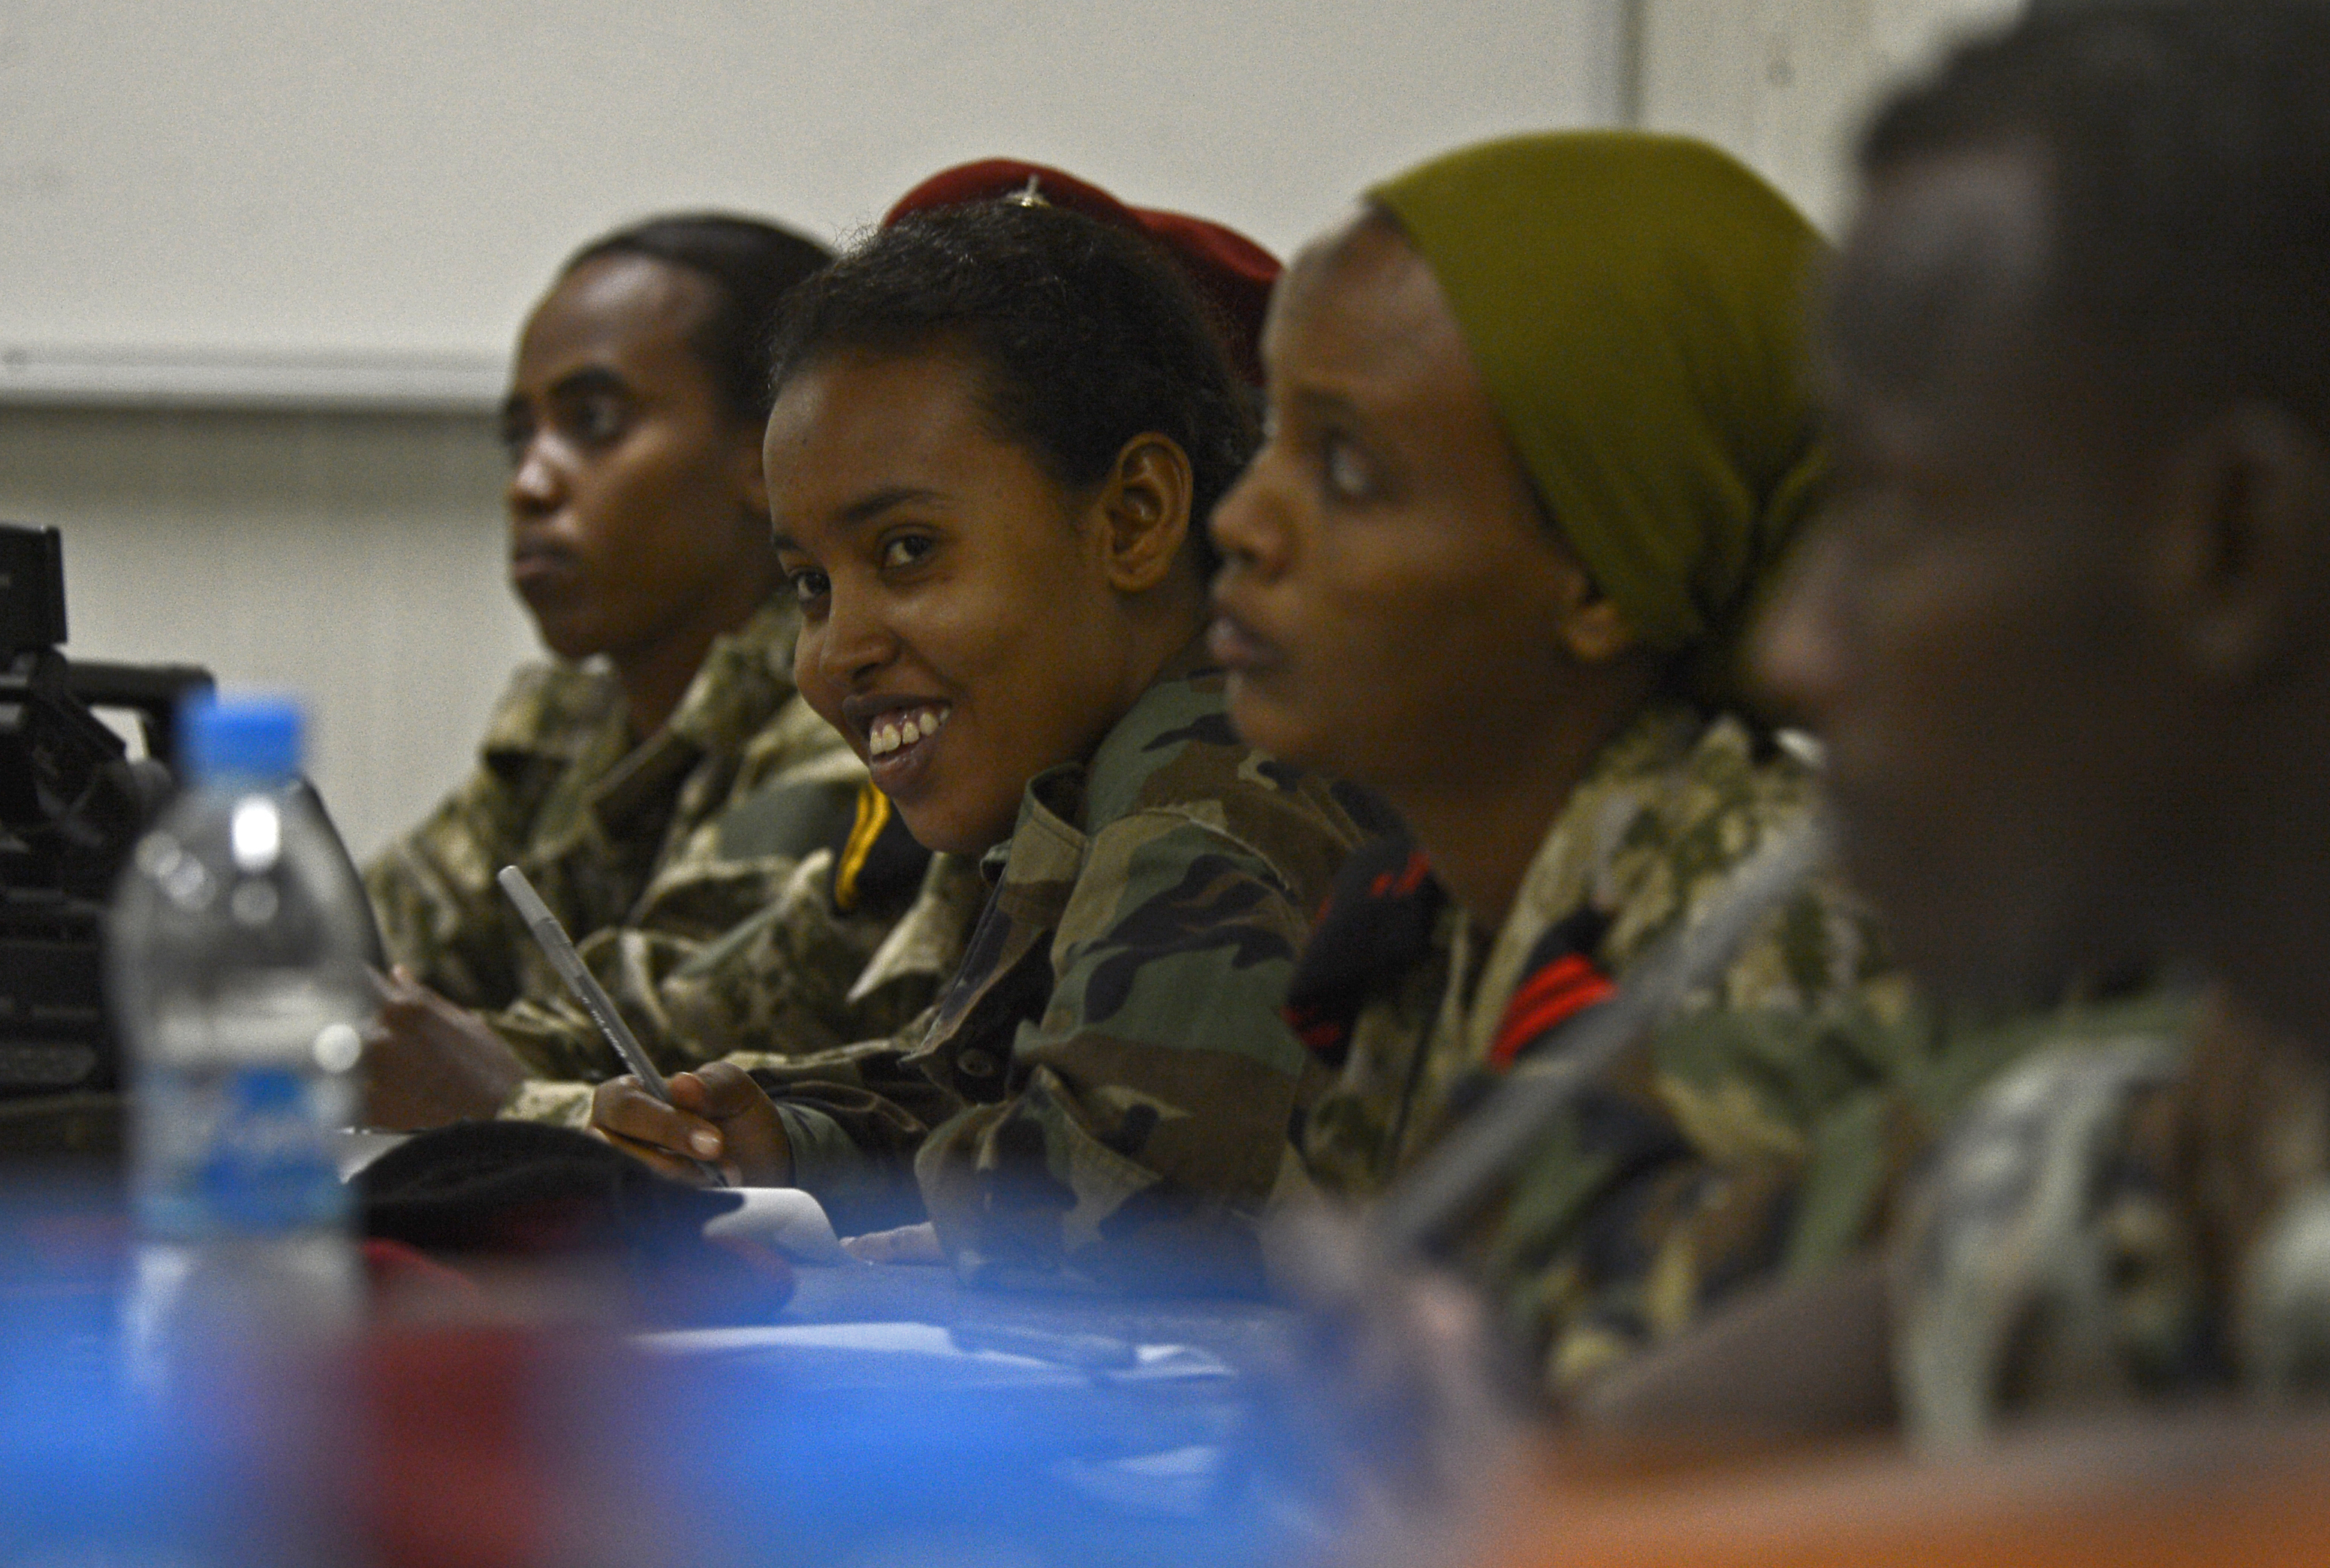 Members of the Djibouti Armed Forces (FAD) discuss photographic composition Dec. 2, 2015, at Camp Lemonnier, Djibouti. Members of Combined Joint Task Force-Horn of Africa Public Affairs Office spent a week sharing photography and videography best practices with the FAD members. (U.S. Air Force photo by Senior Airman Peter Thompson)